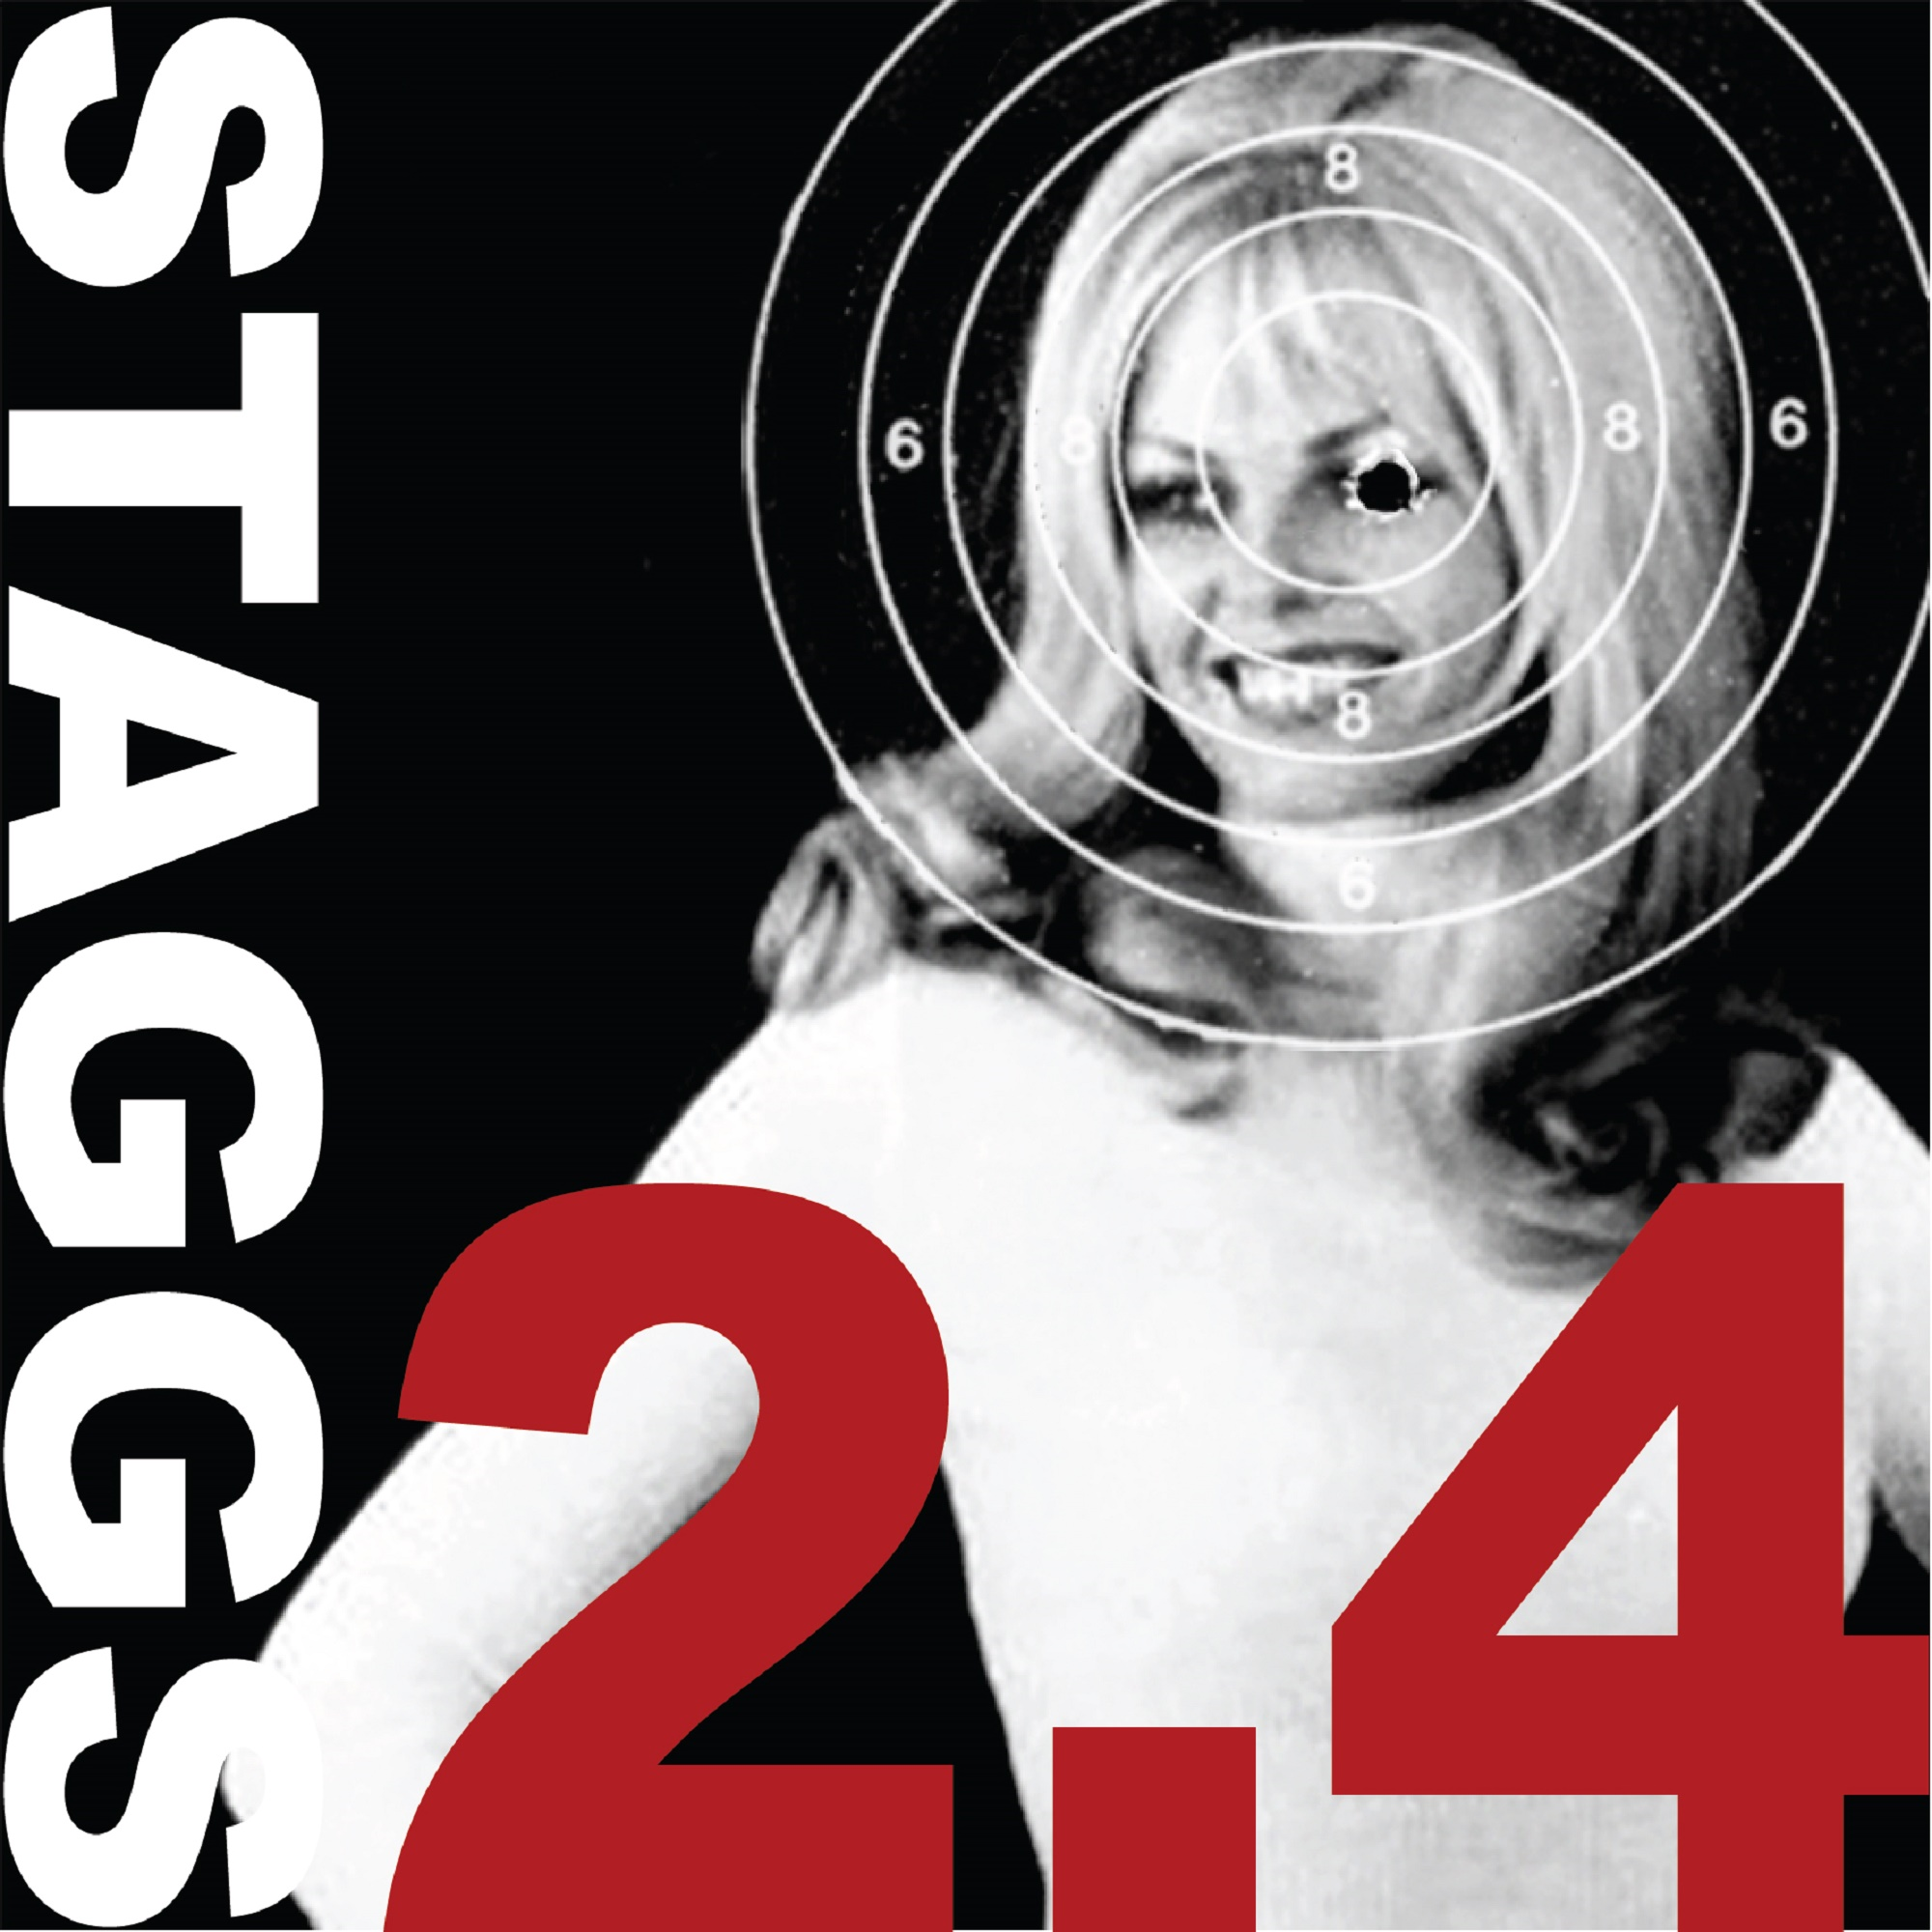 Staggs 2.4